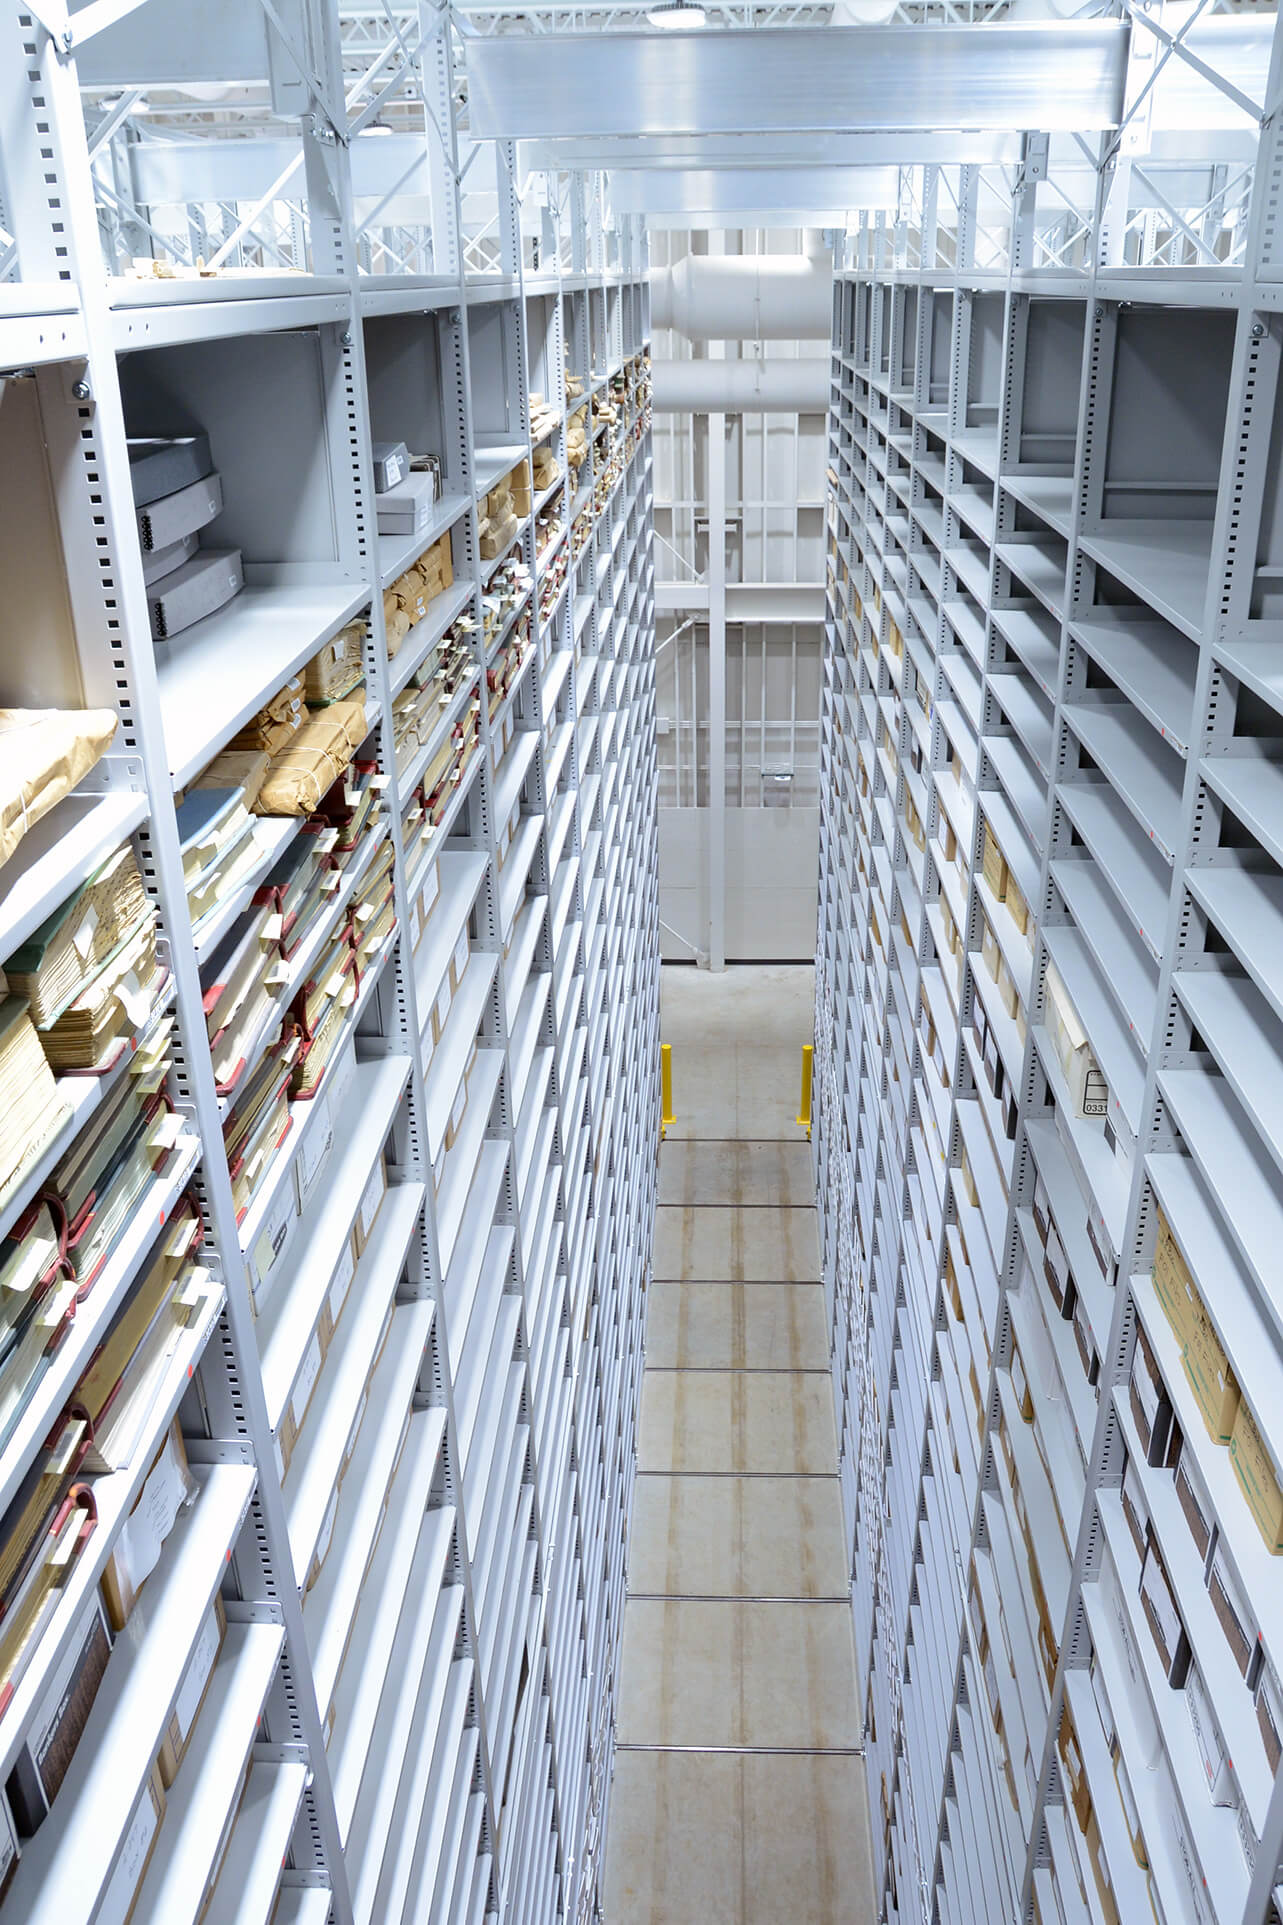 Archival Library Shelving on 34 foot tall compact mobile storage system